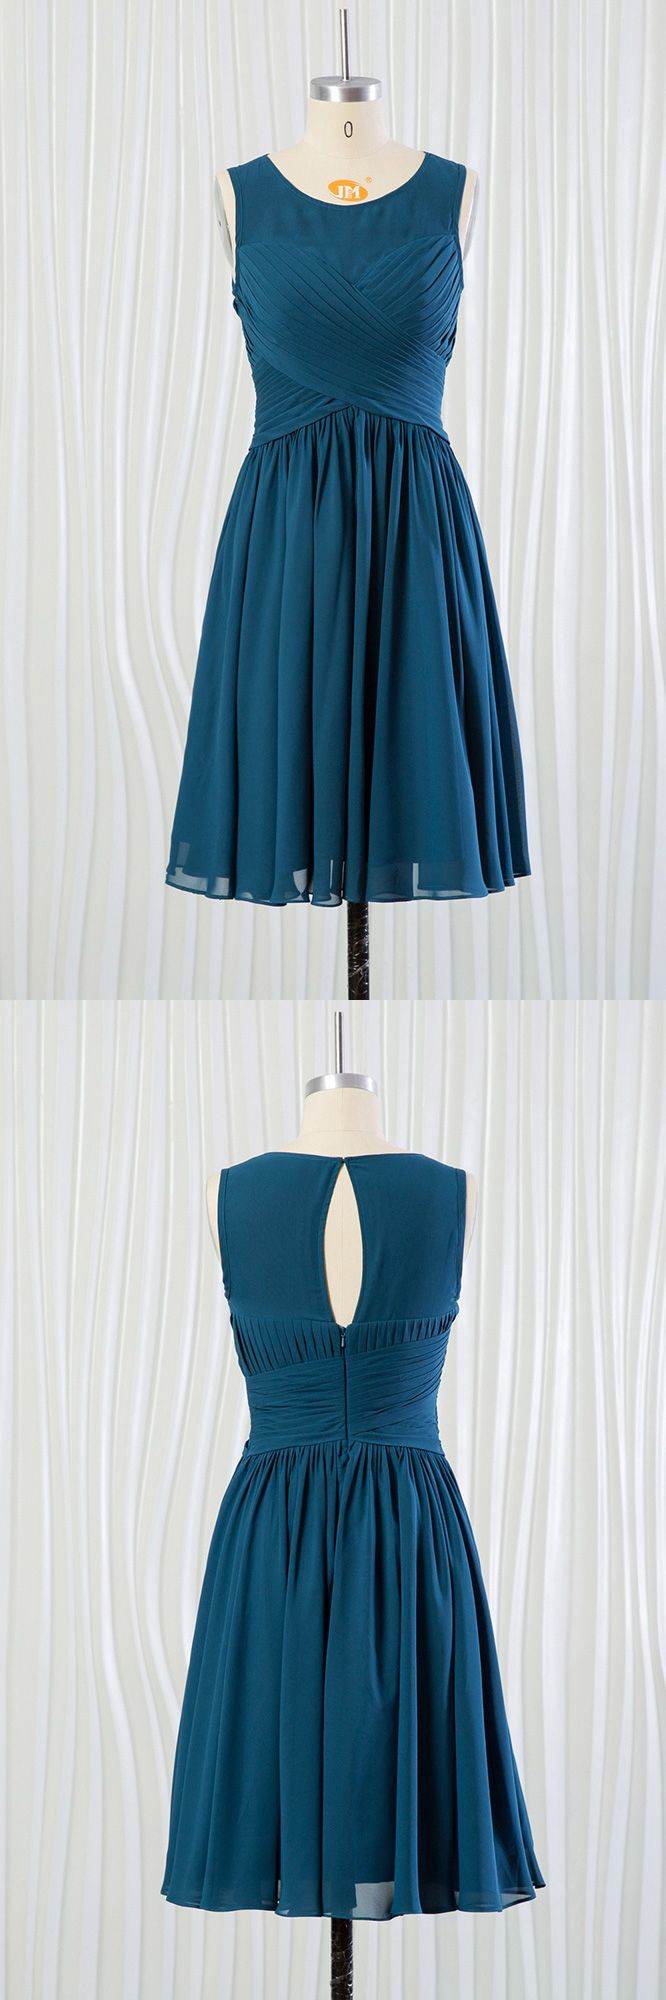 Cheap short teal blue bridesmaid dress with pleated bodice fn